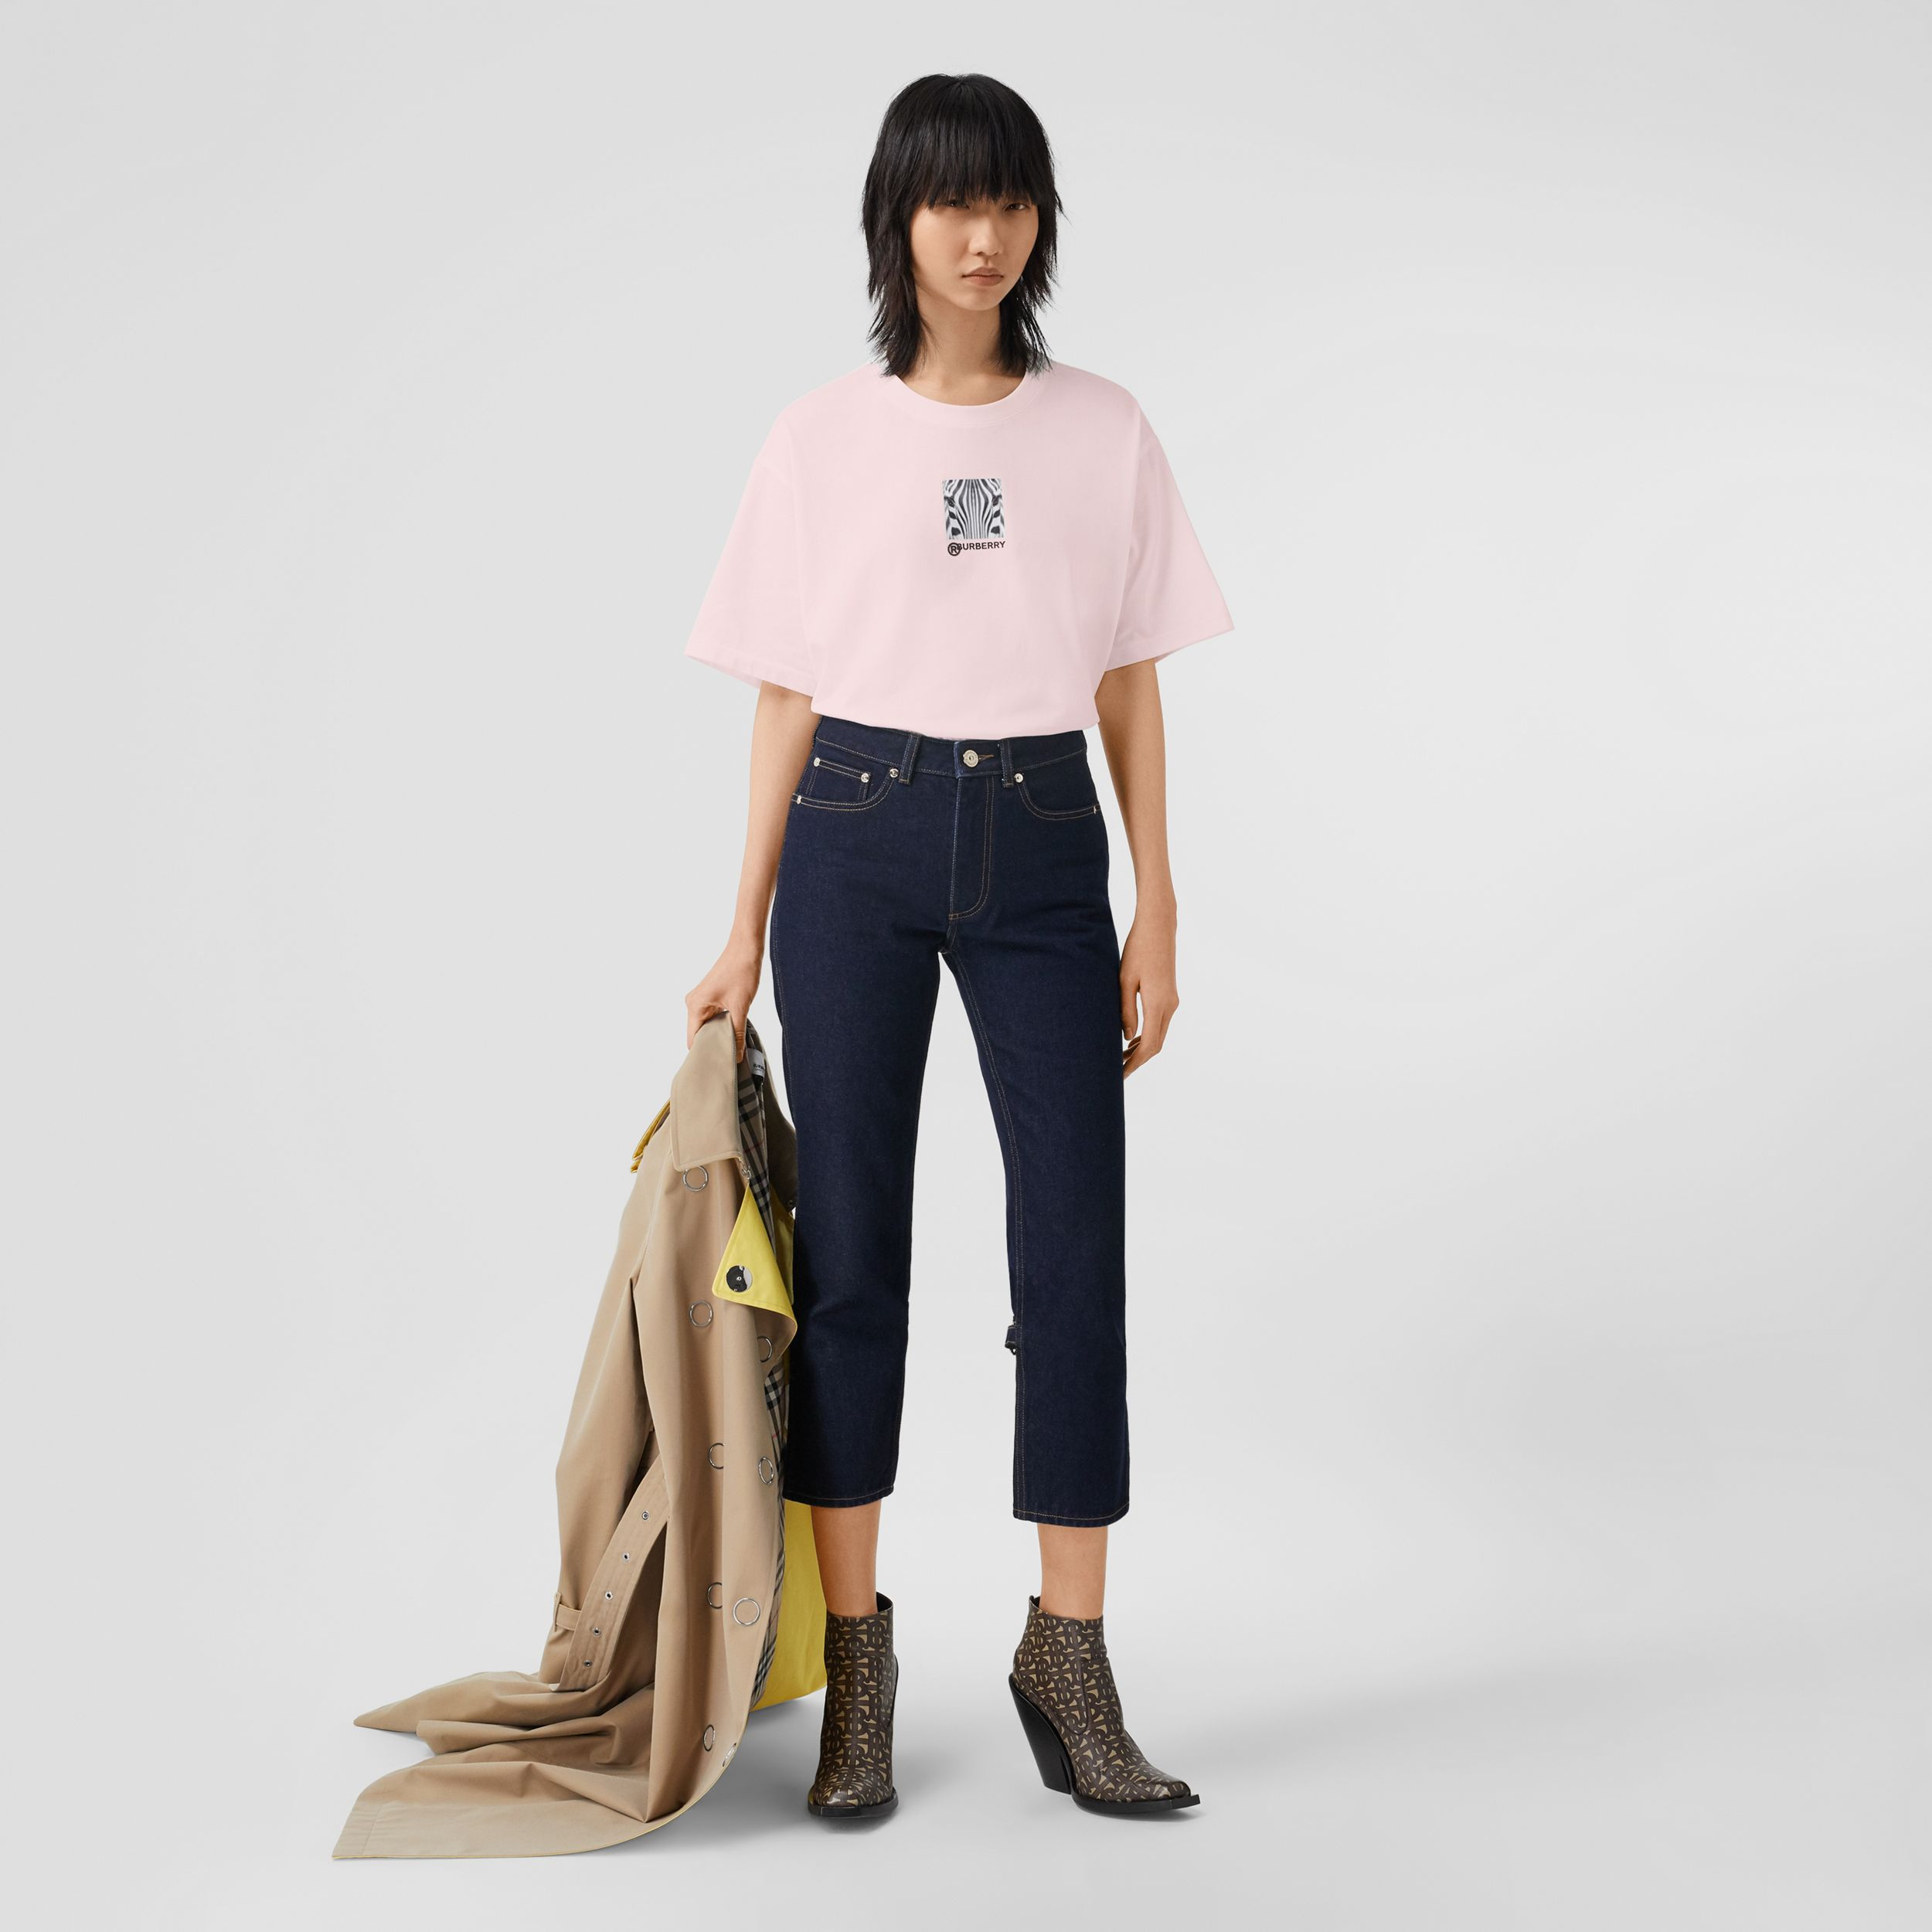 Montage Print Cotton Oversized T-shirt in Alabaster Pink - Women | Burberry Canada - 1